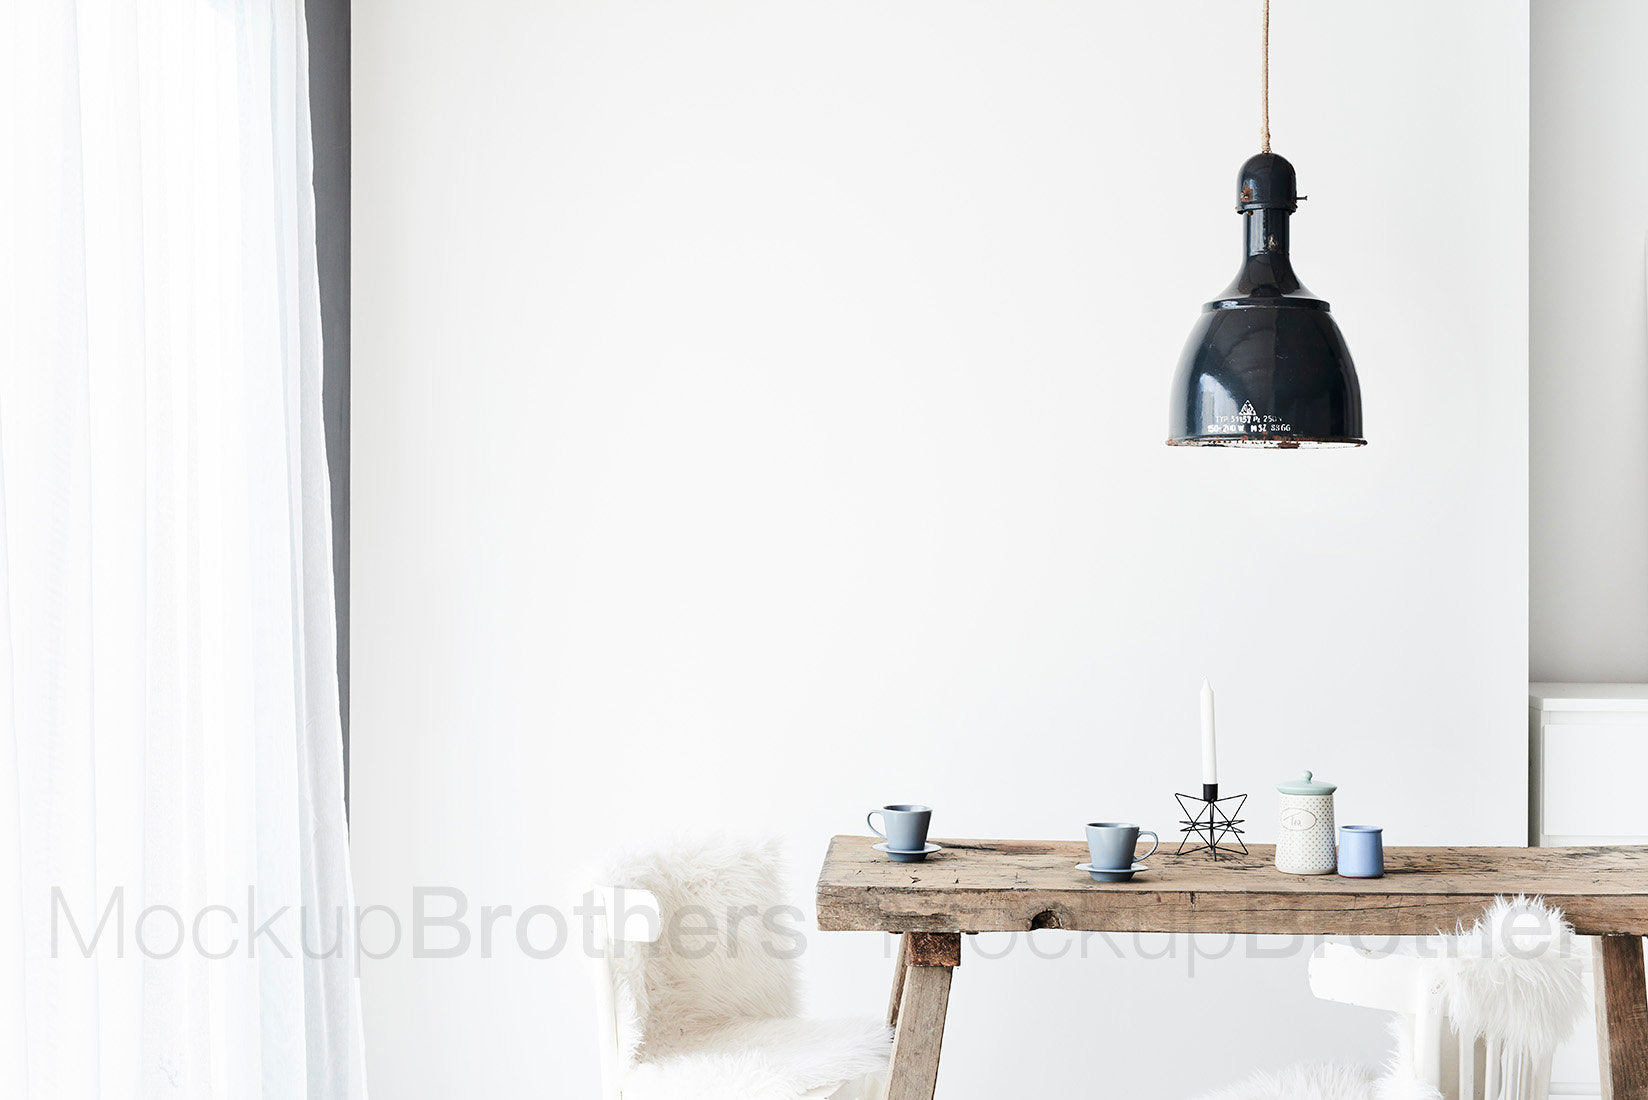 Farmhouse interior stock photo by Mockup brothers